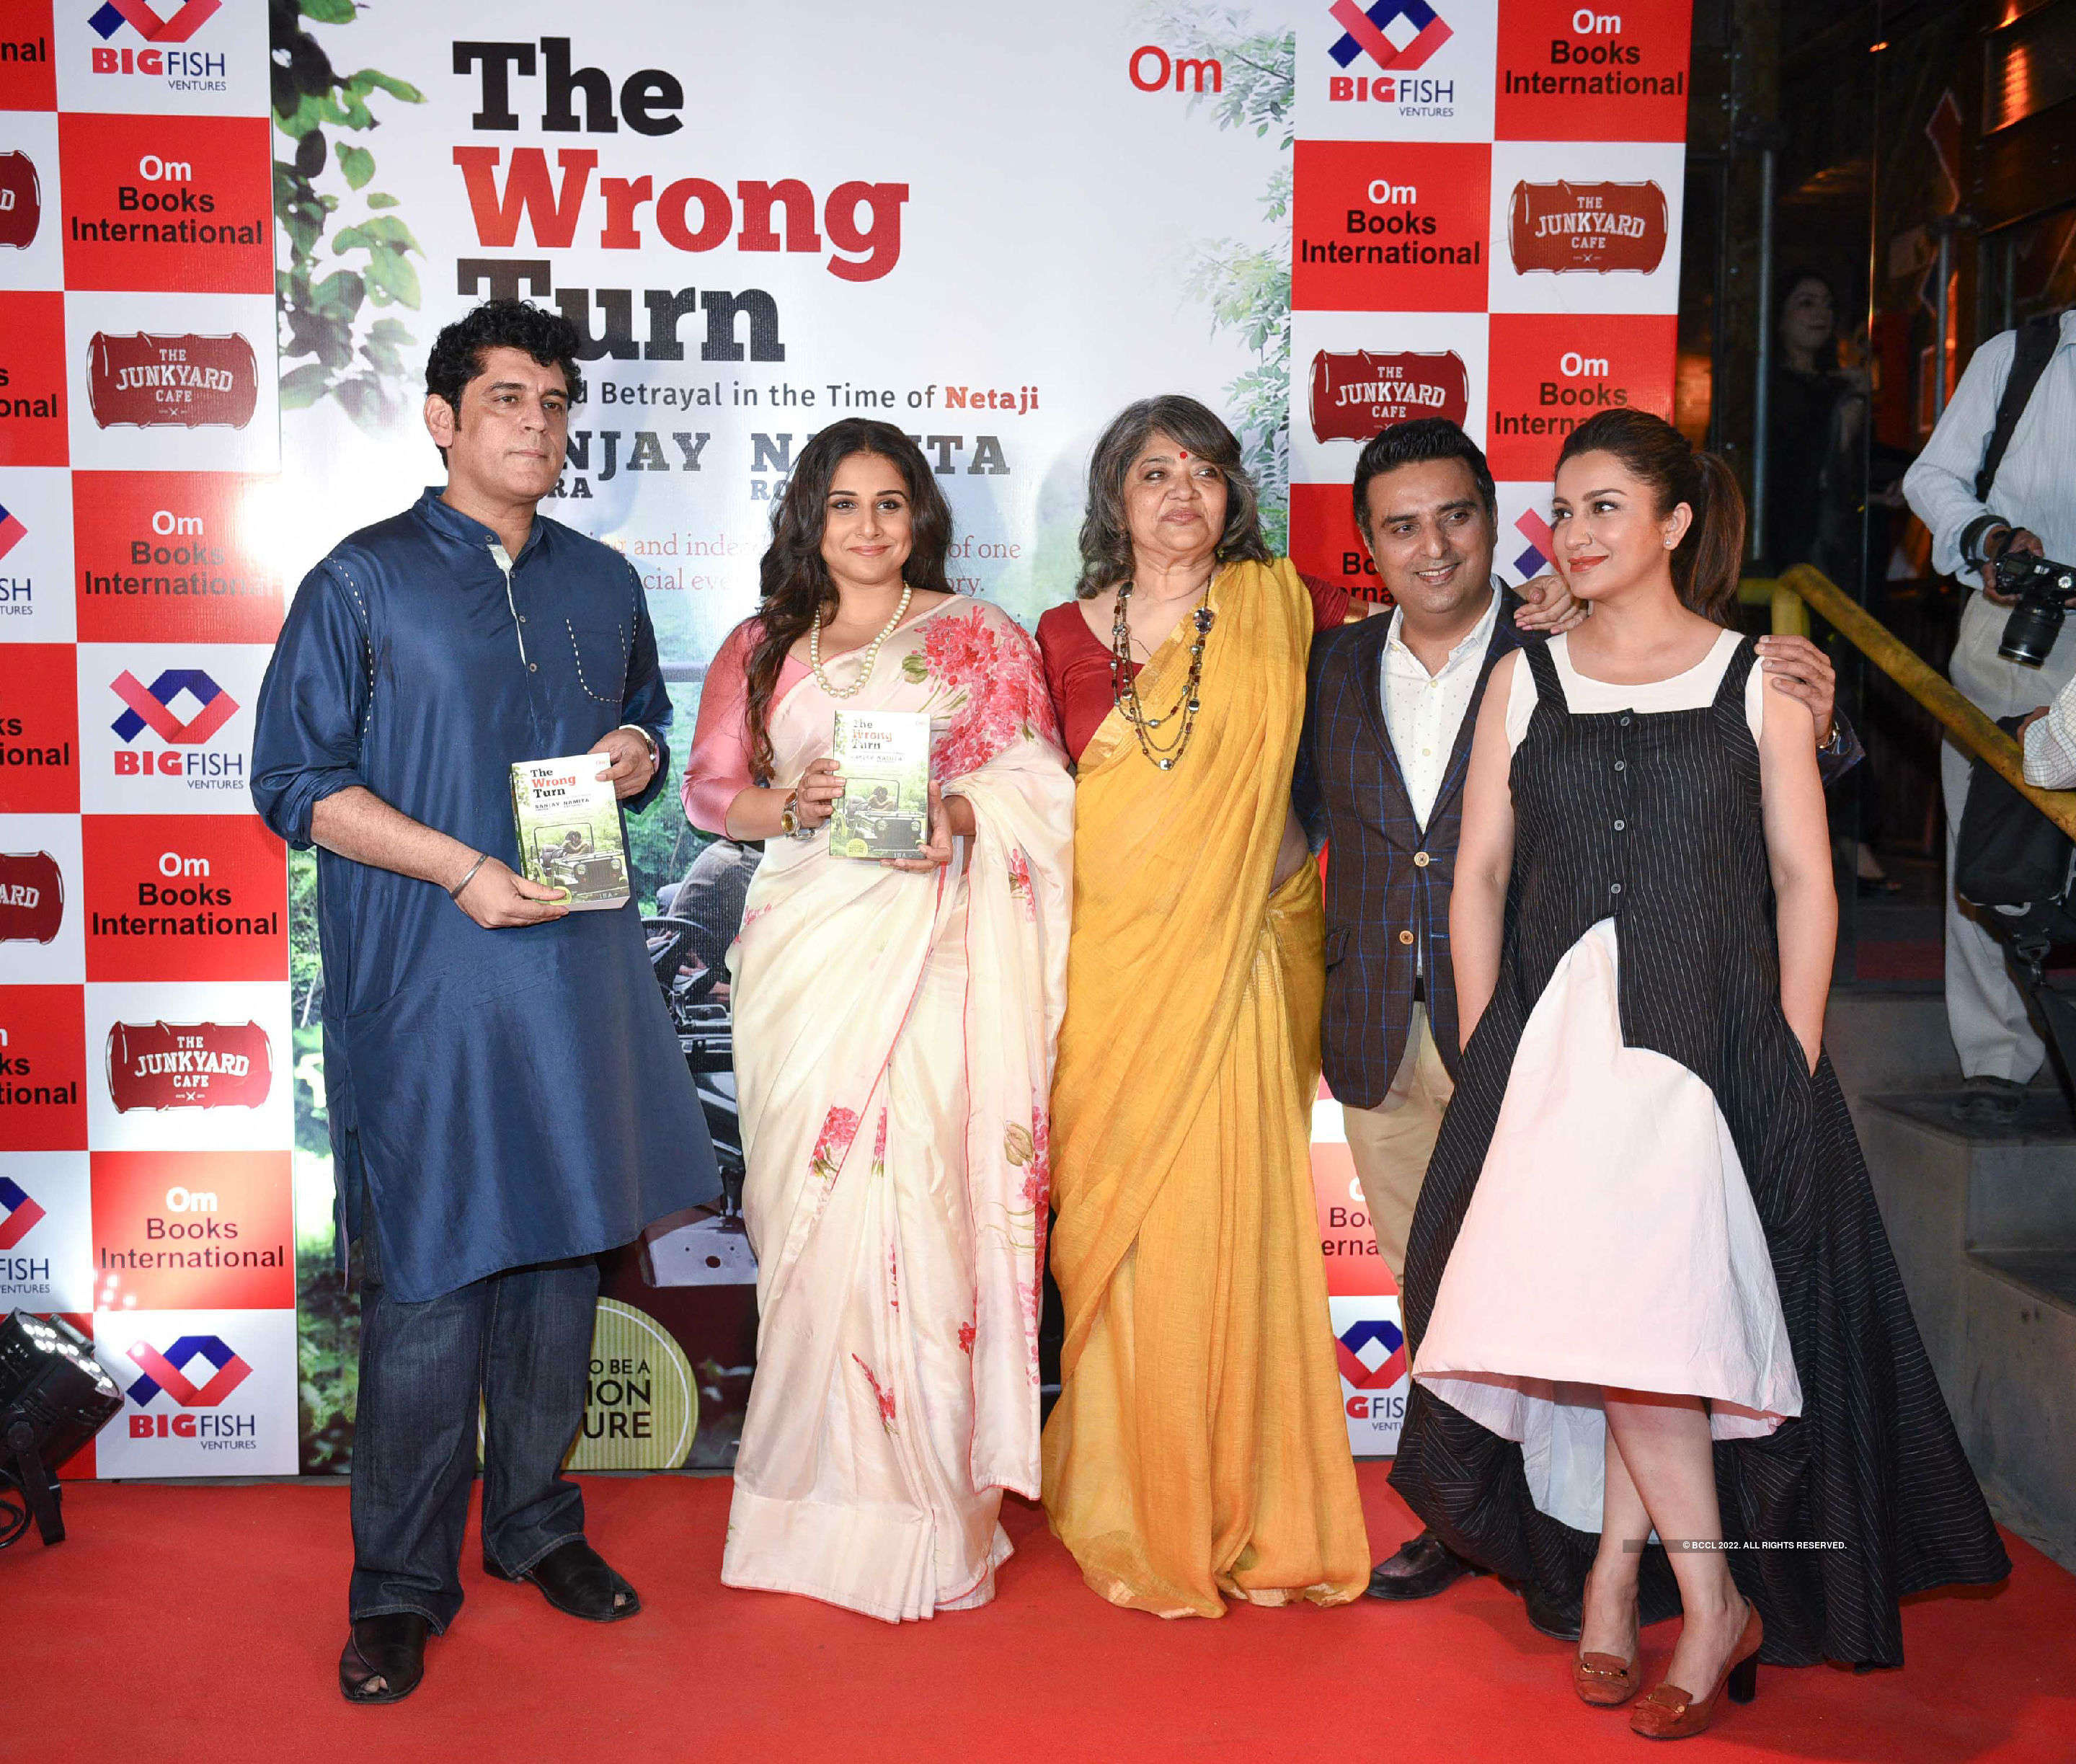 The Wrong Turn: Book Launch